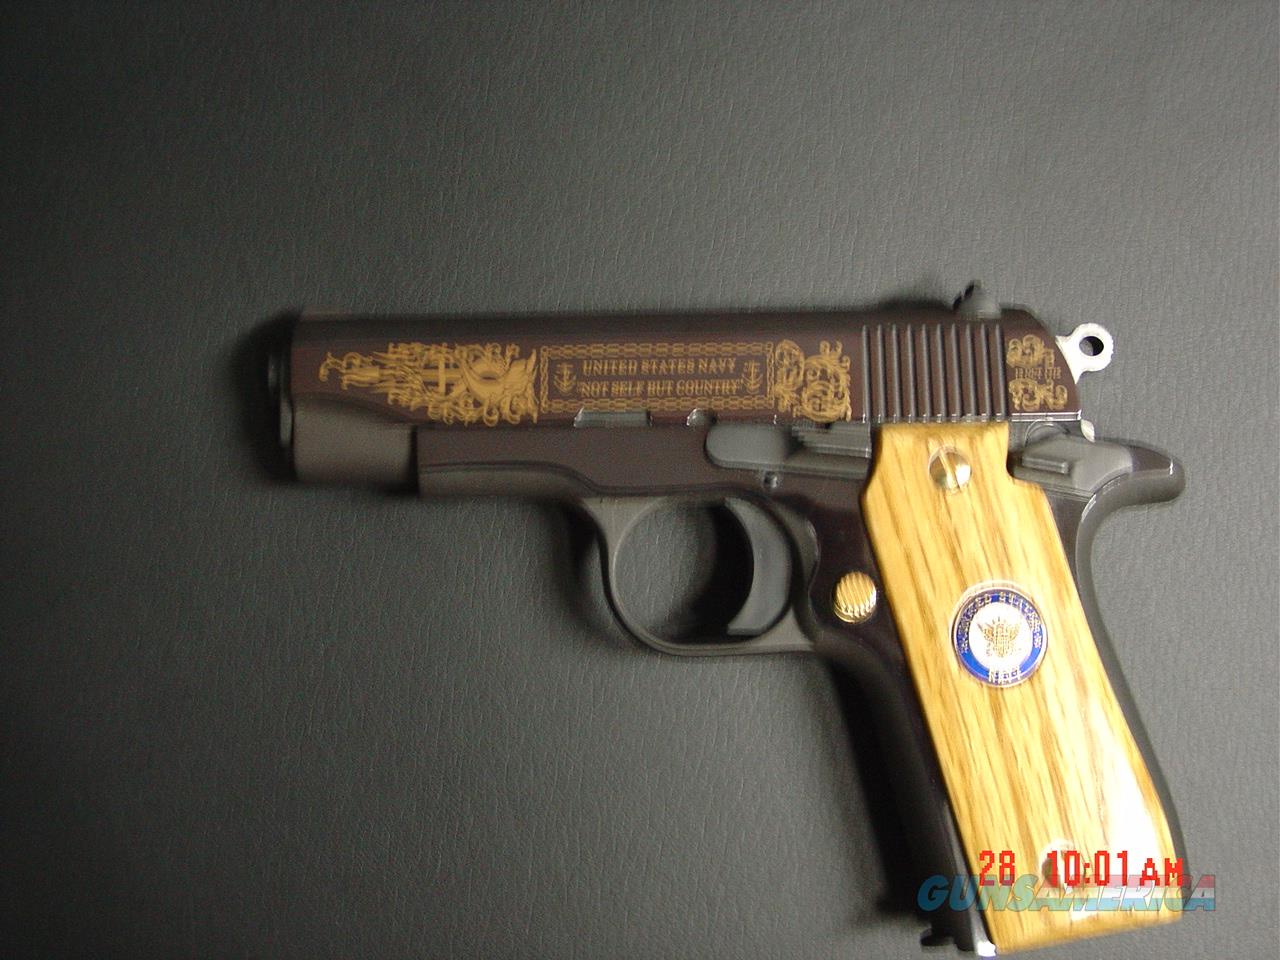 Colt Government model 380,United States Navy commemorative,mini 1911 style,MKIV Series 80,engraved slide in high gloss blue & gold,wood grips,awesome pocket pistol,box & manual.  Guns > Pistols > Colt Automatic Pistols (.25, .32, & .380 cal)